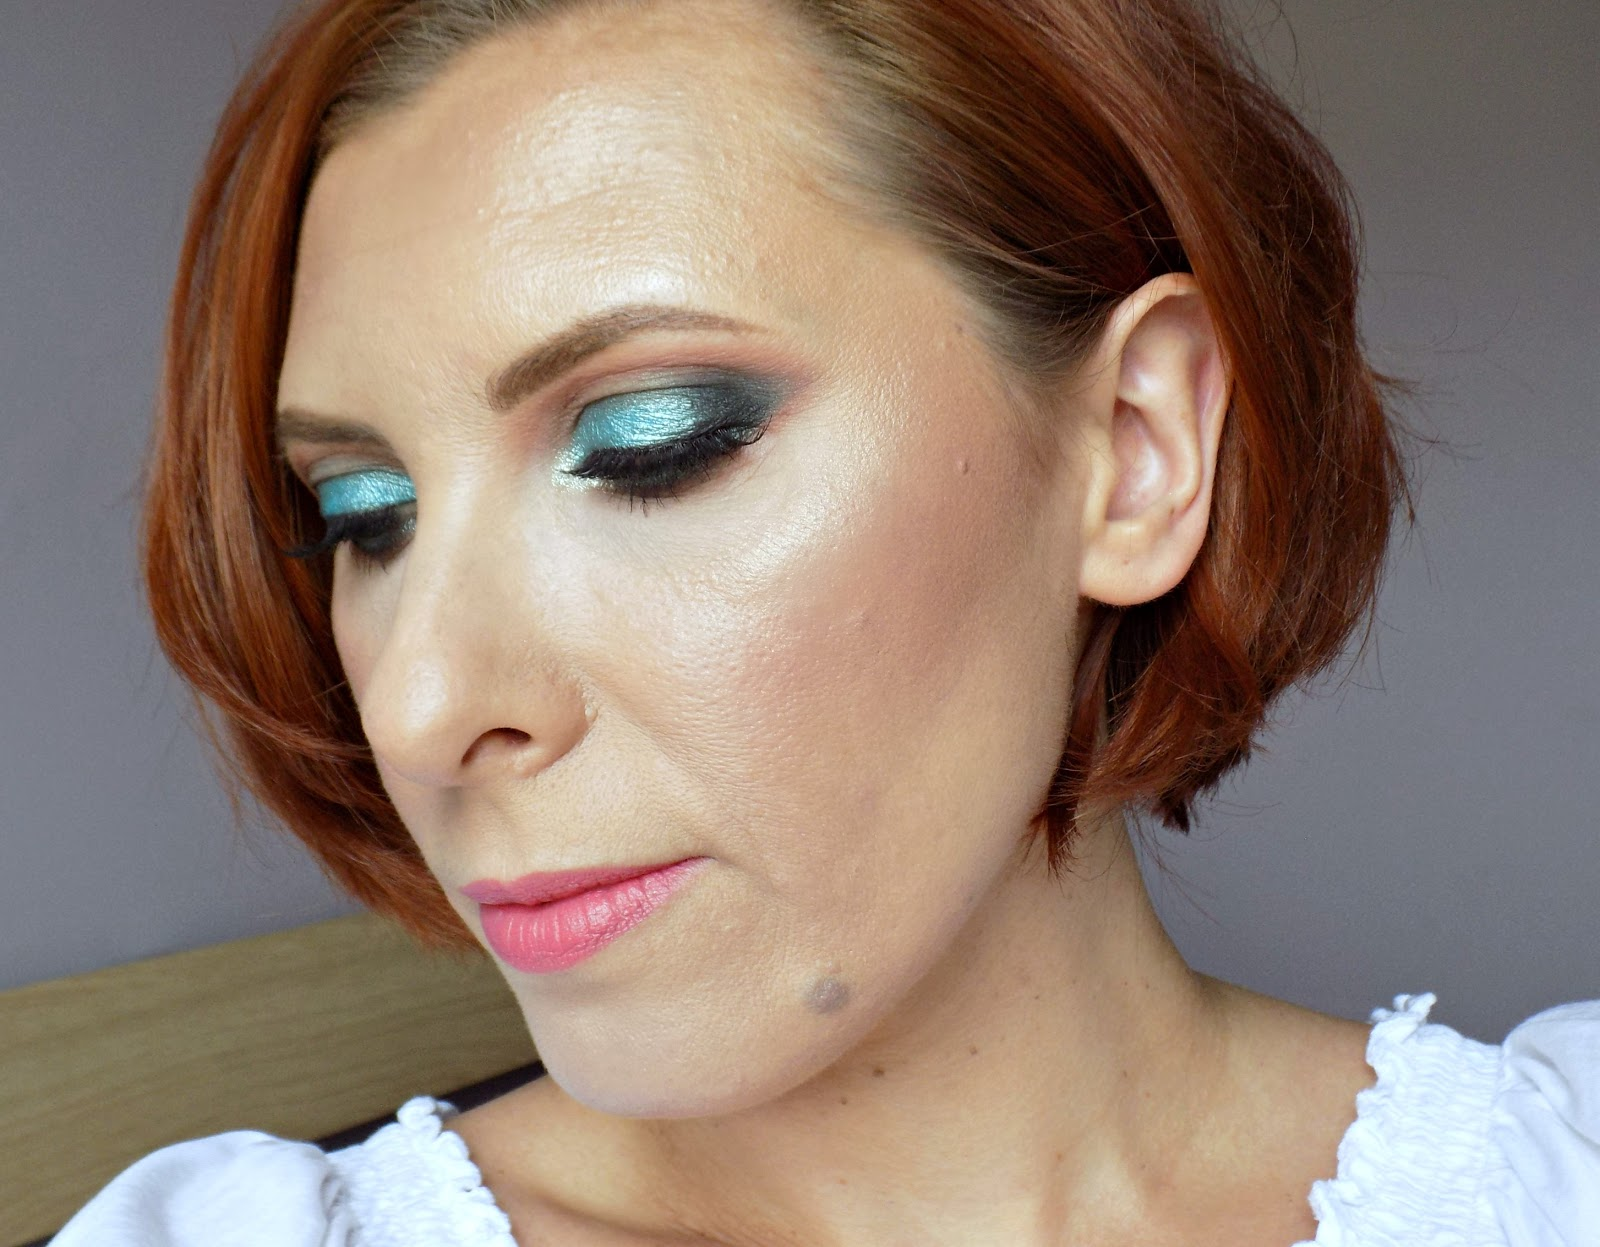 turquoise eye look using Makeup Geek eyeshadows